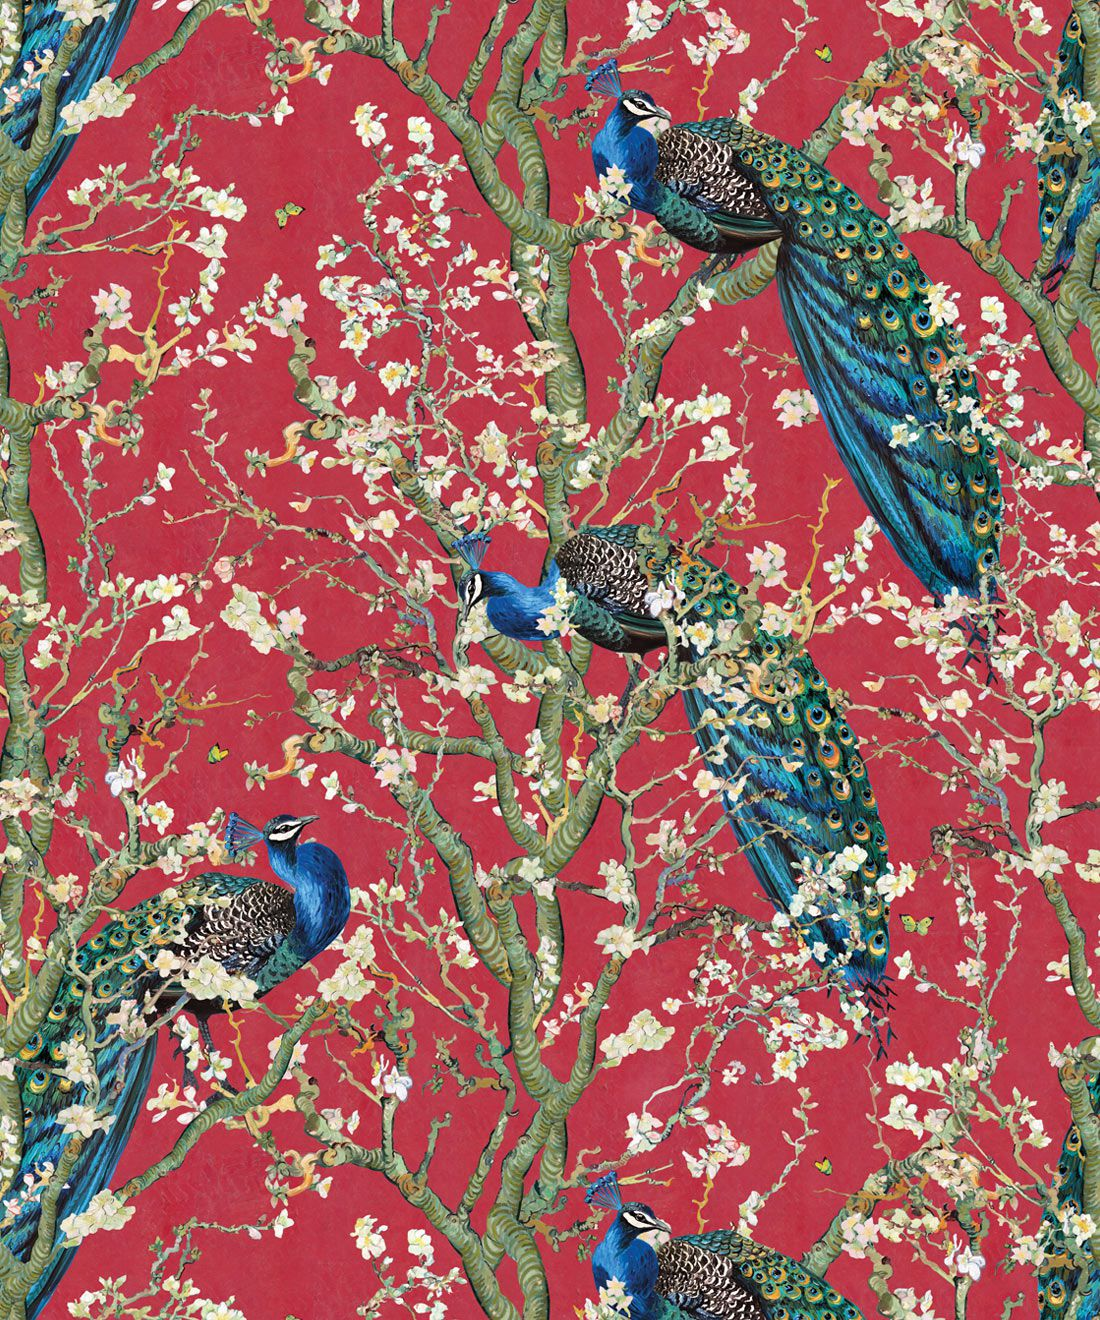 Almond Blossom Wallpaper • Chinoiserie Wallpaper • Wallpaper with Peacocks • Red Lantern Wallpaper •Swatch